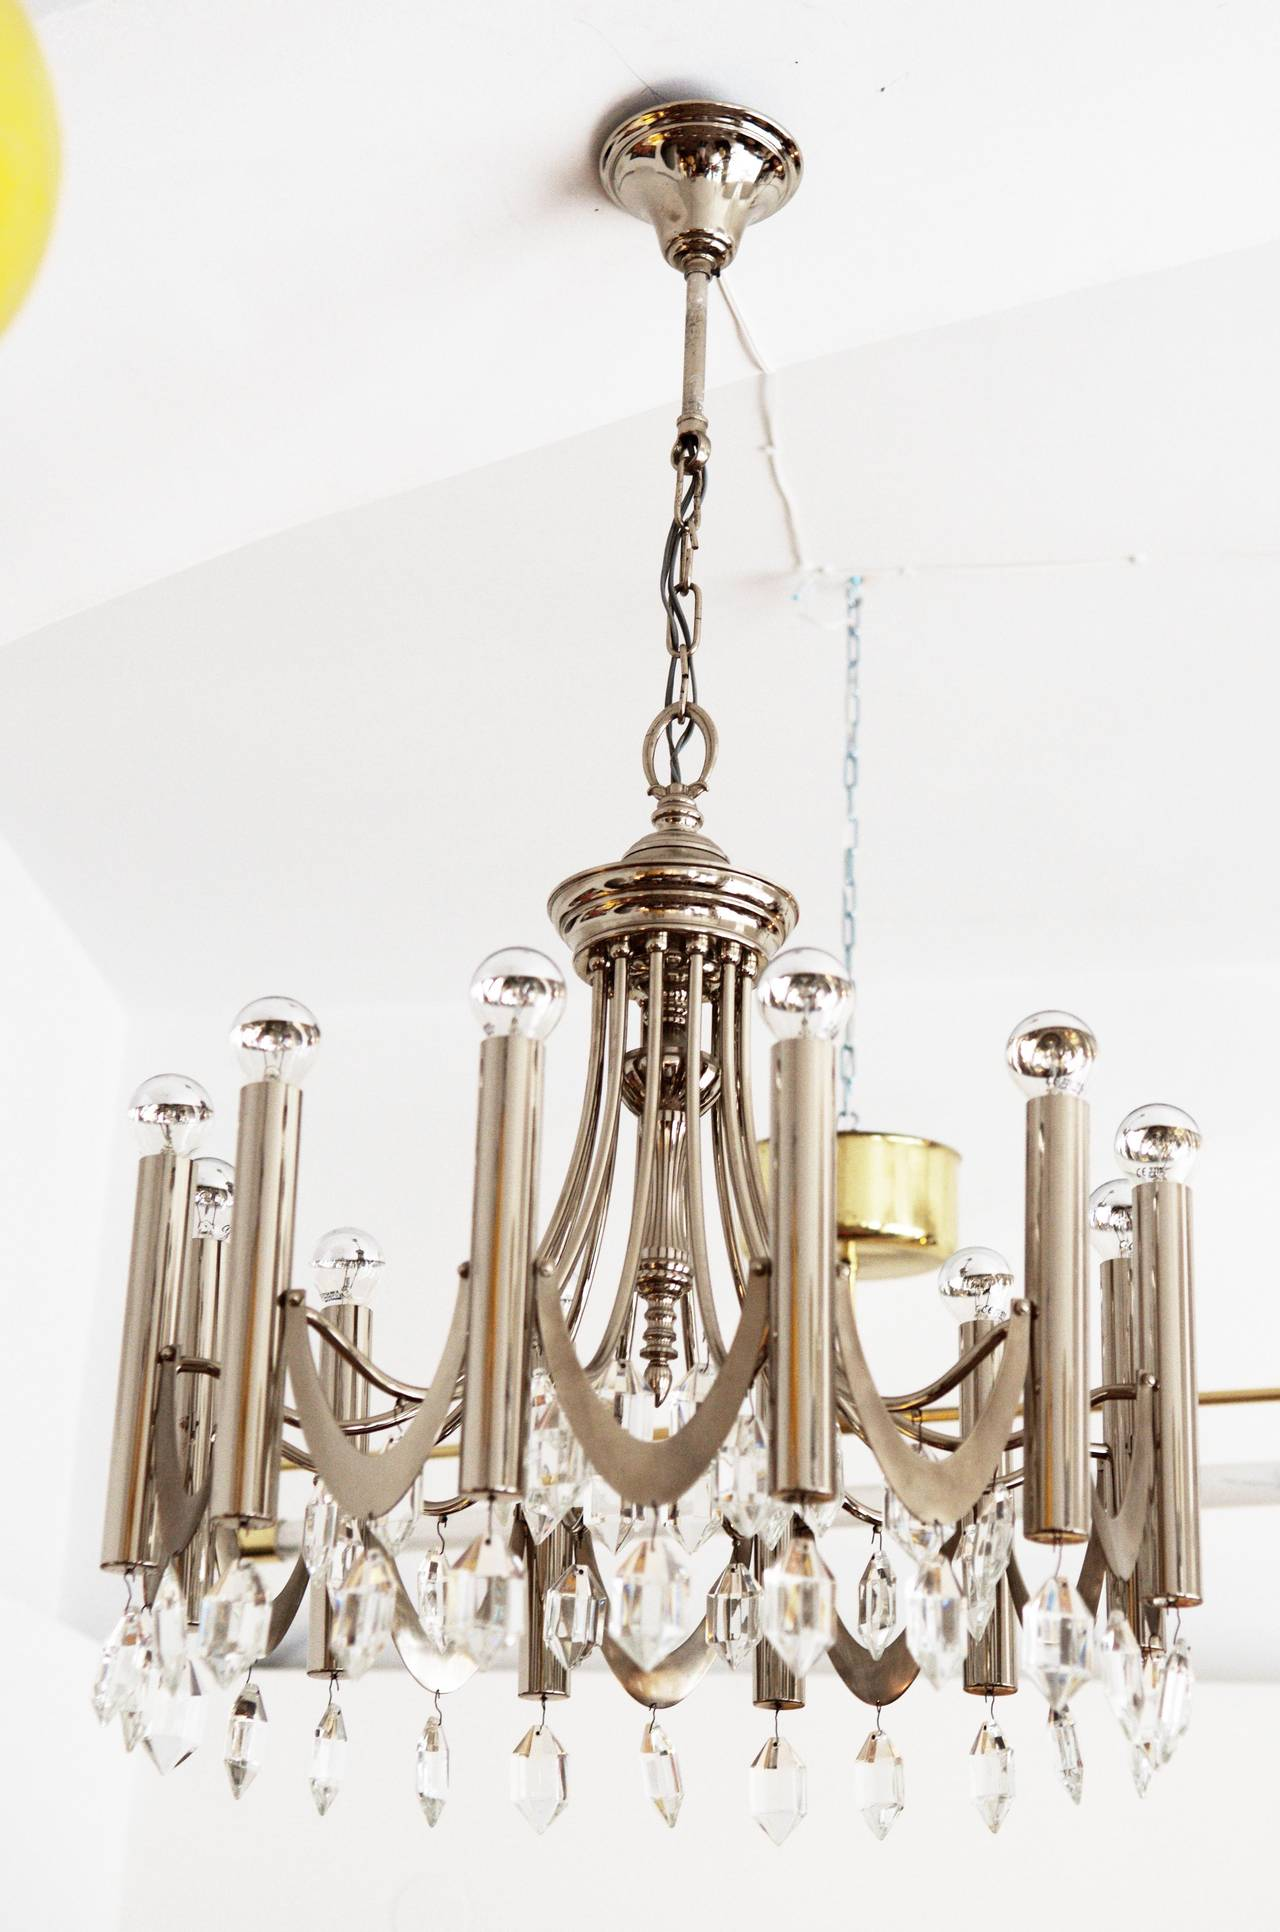 Large 1960s chandelier attributed to Gaetano Sciolari. Frame designed with twelve arms and 48 crystals. The crystals are in the style of the Austrian manufacturers Bakalowits. Dimensions: Height 46 cm. Diameter: 56 cm. The chain can be adjusted